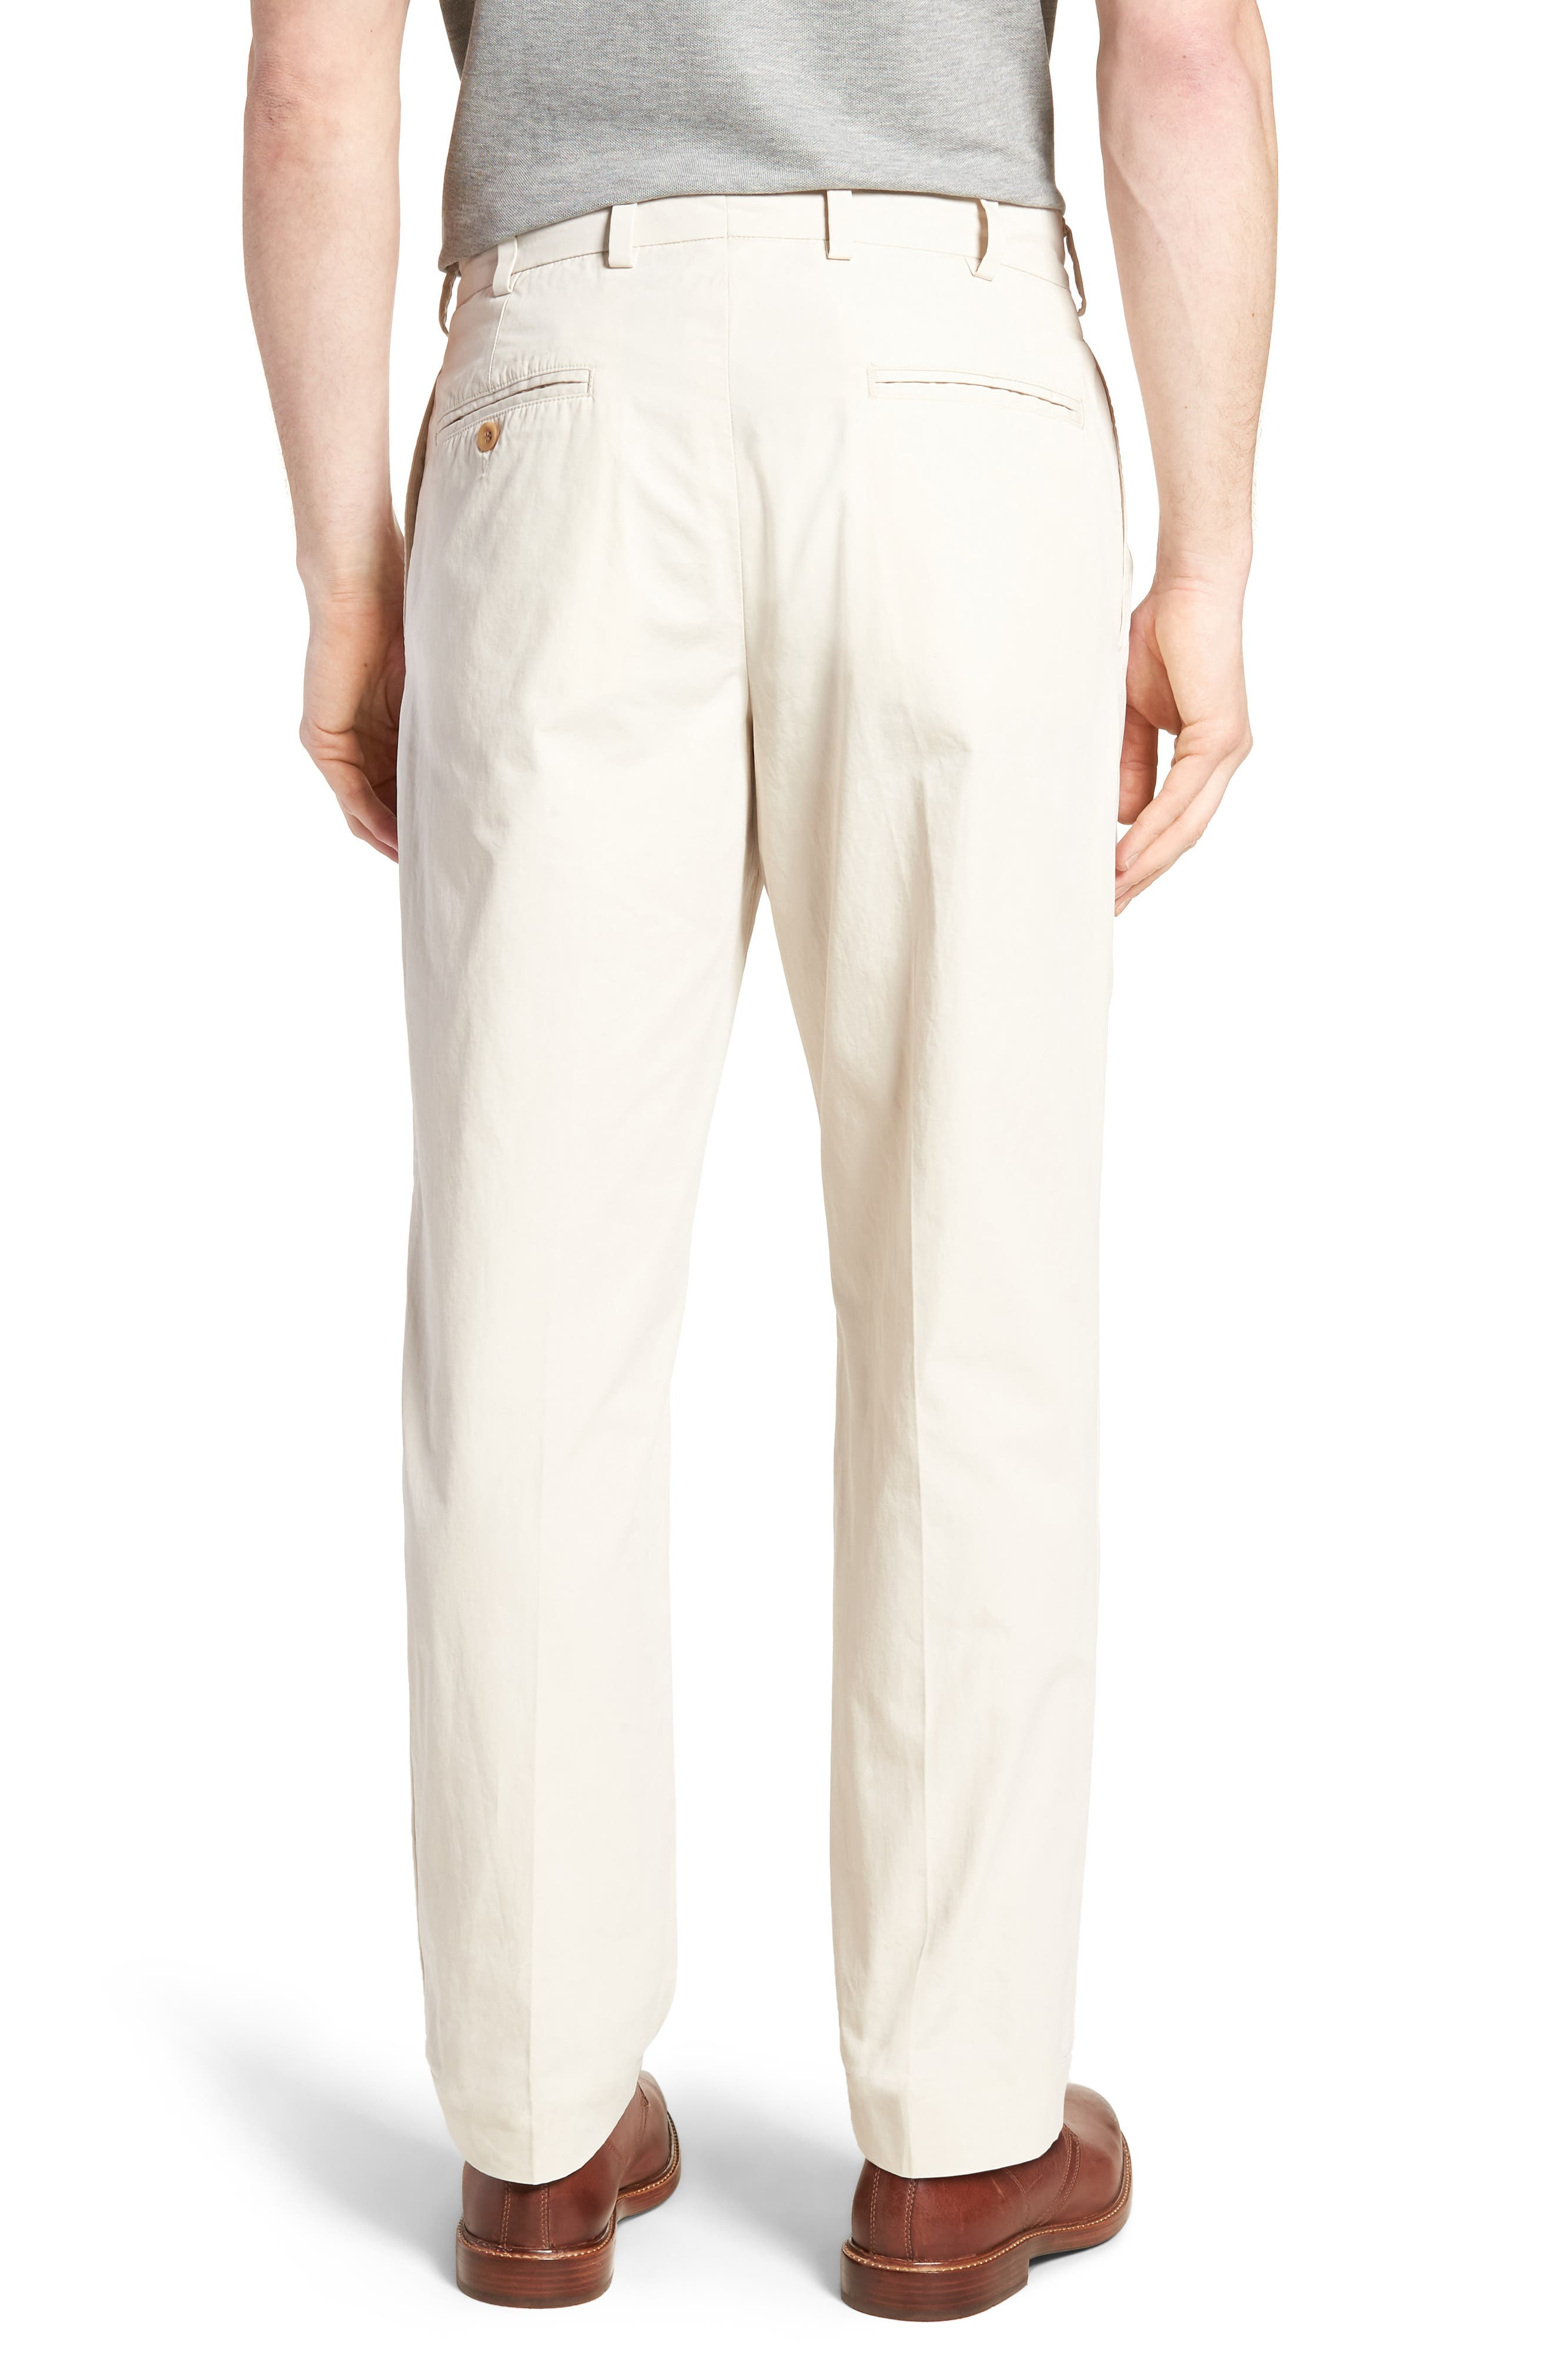 M2 Classic Fit Pleated Tropical Cotton Poplin Pants,                             Alternate thumbnail 2, color,